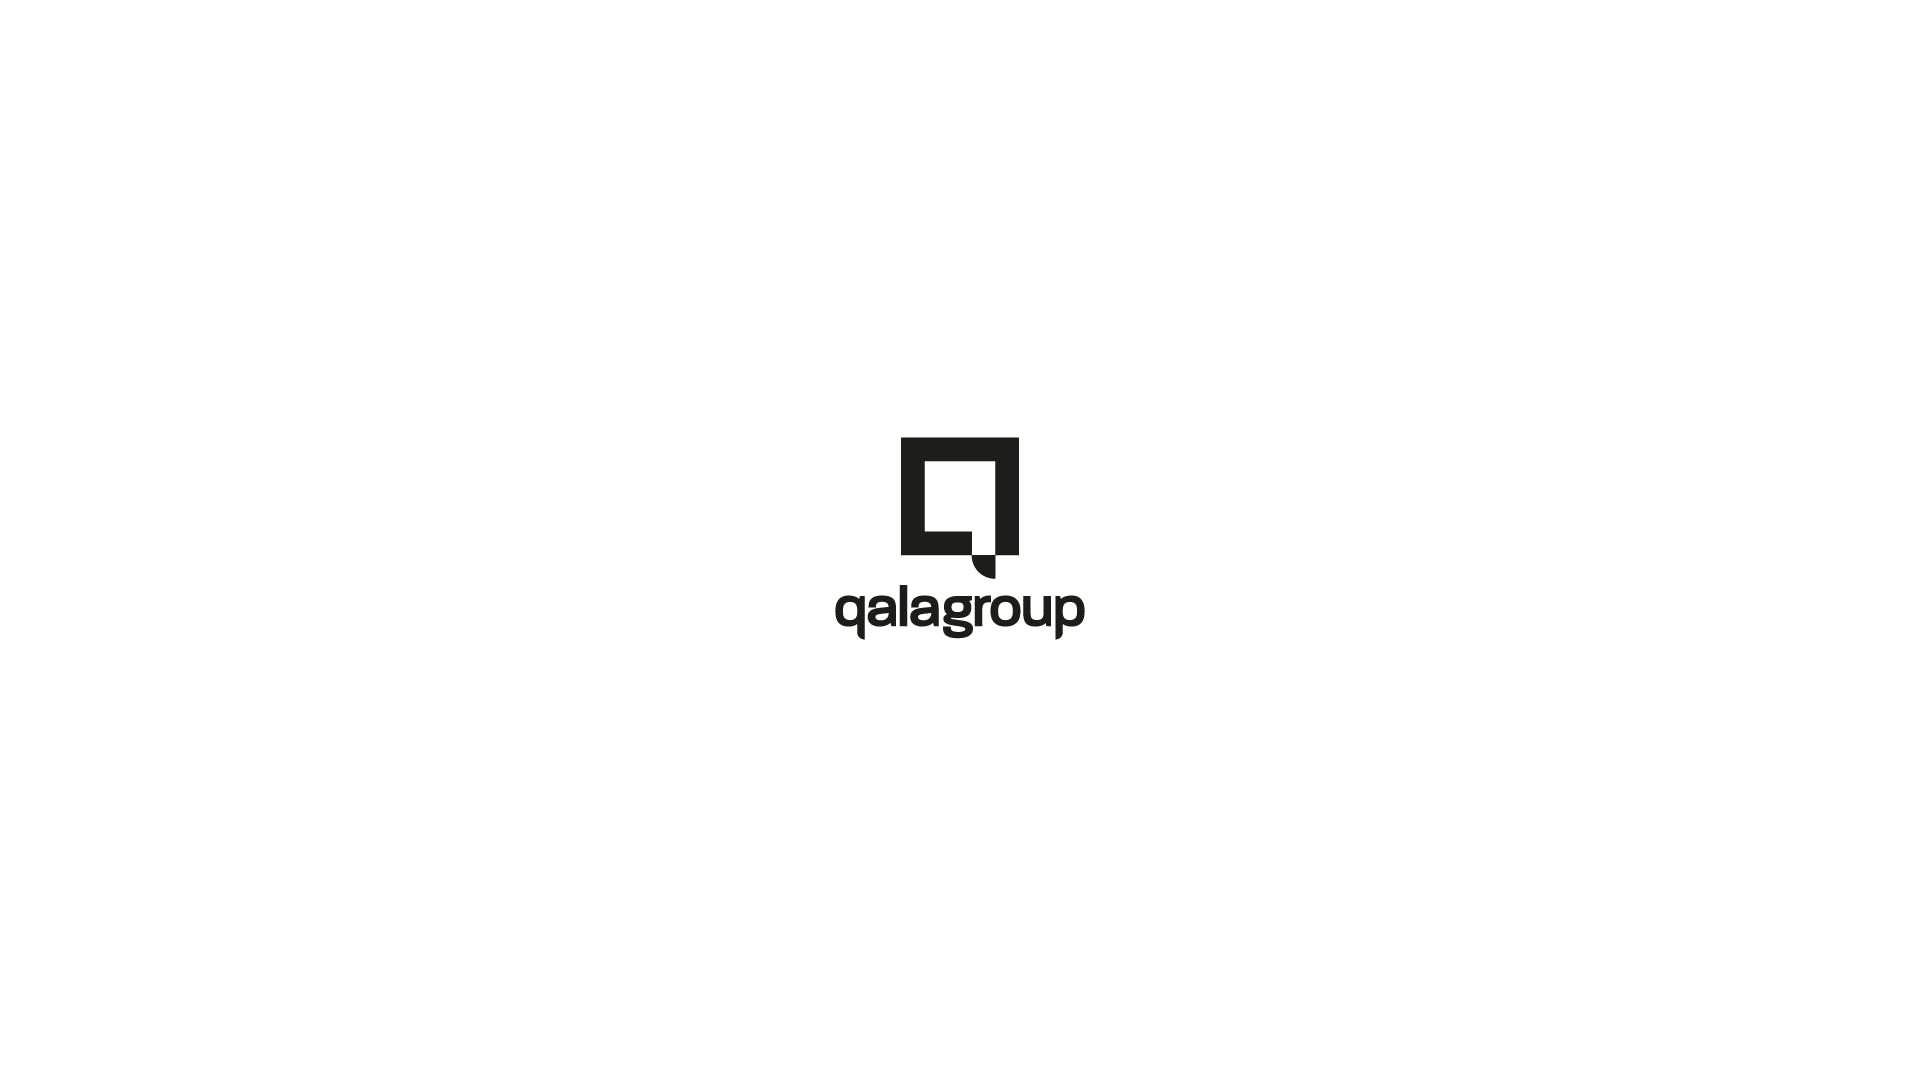 QALA GROUP REBRANDING